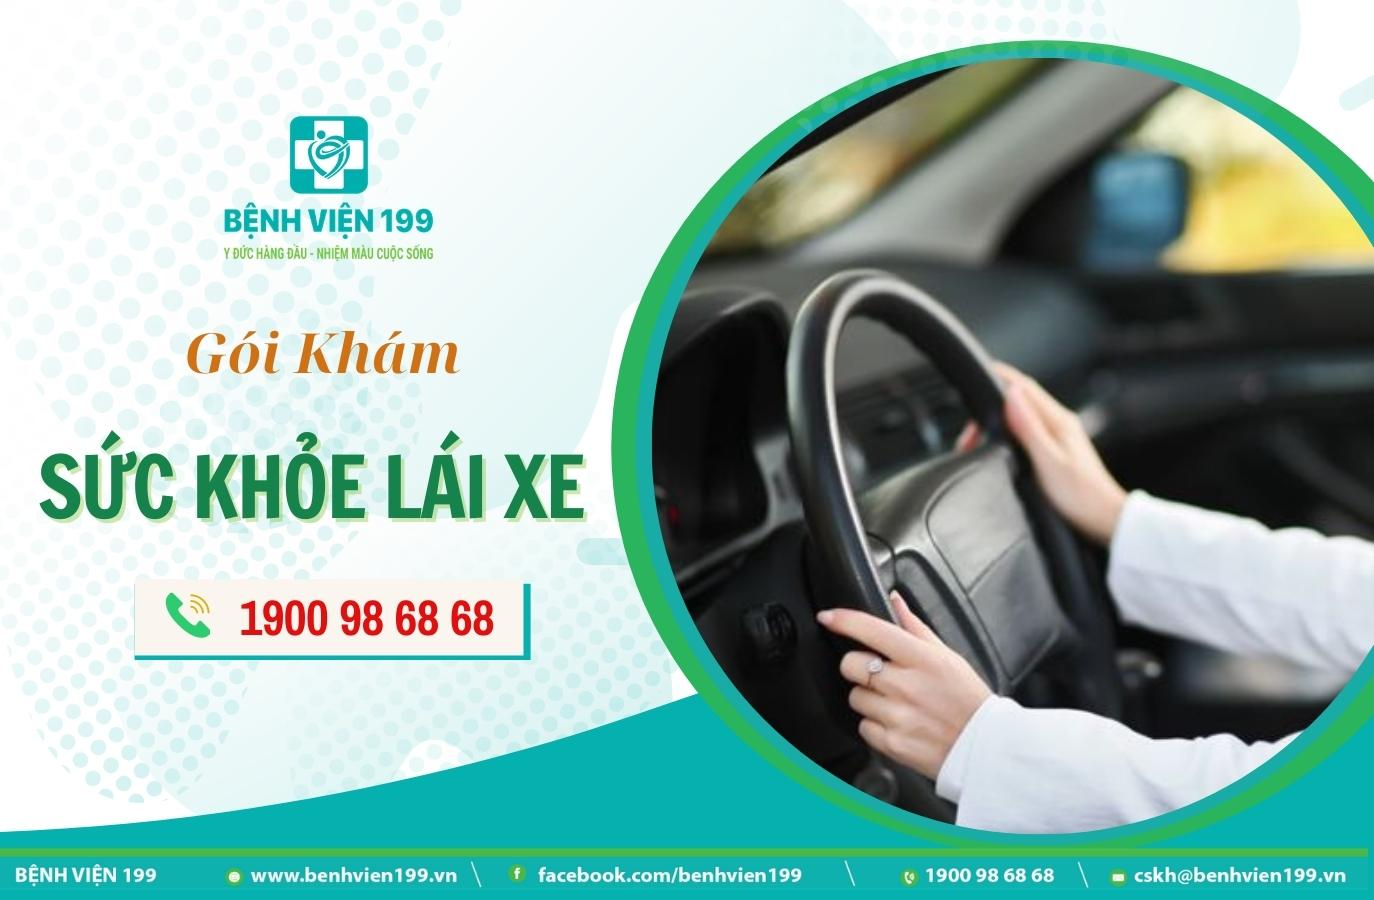 Driving License health check-up package